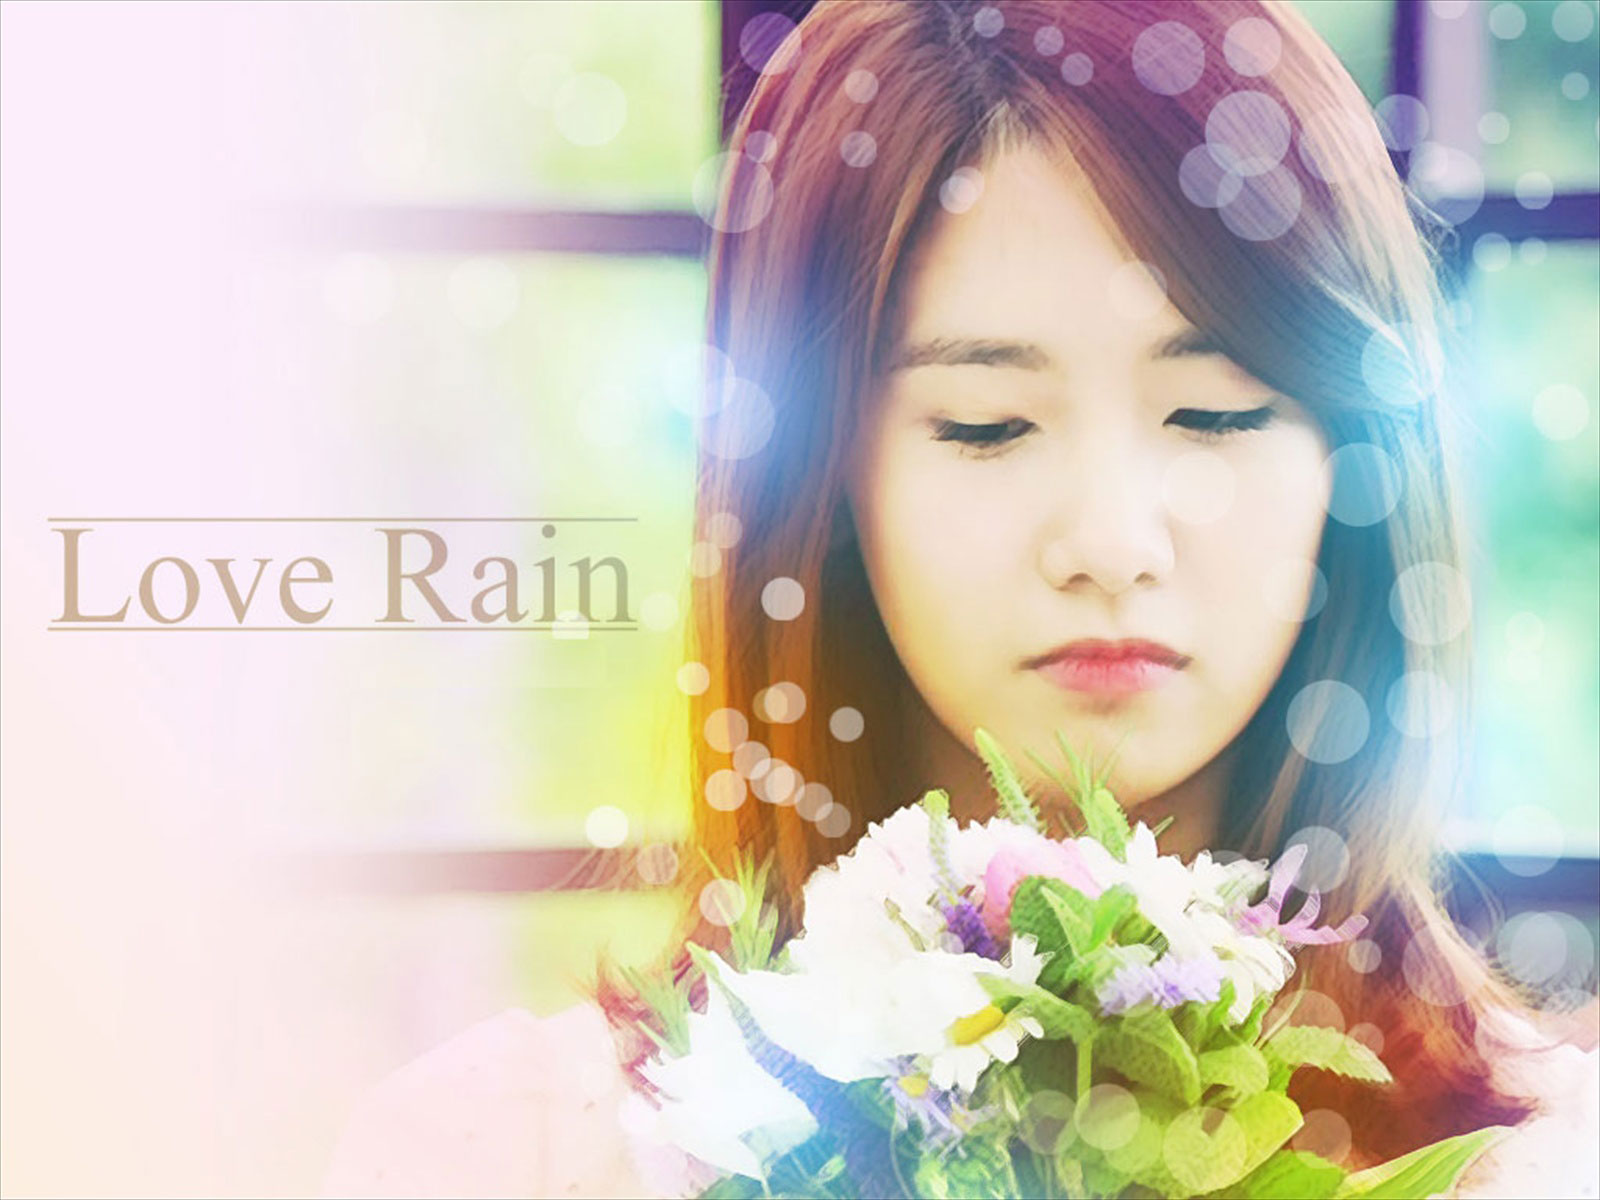 Rain Love Wallpaper Desktop : Love Rain Wallpaper